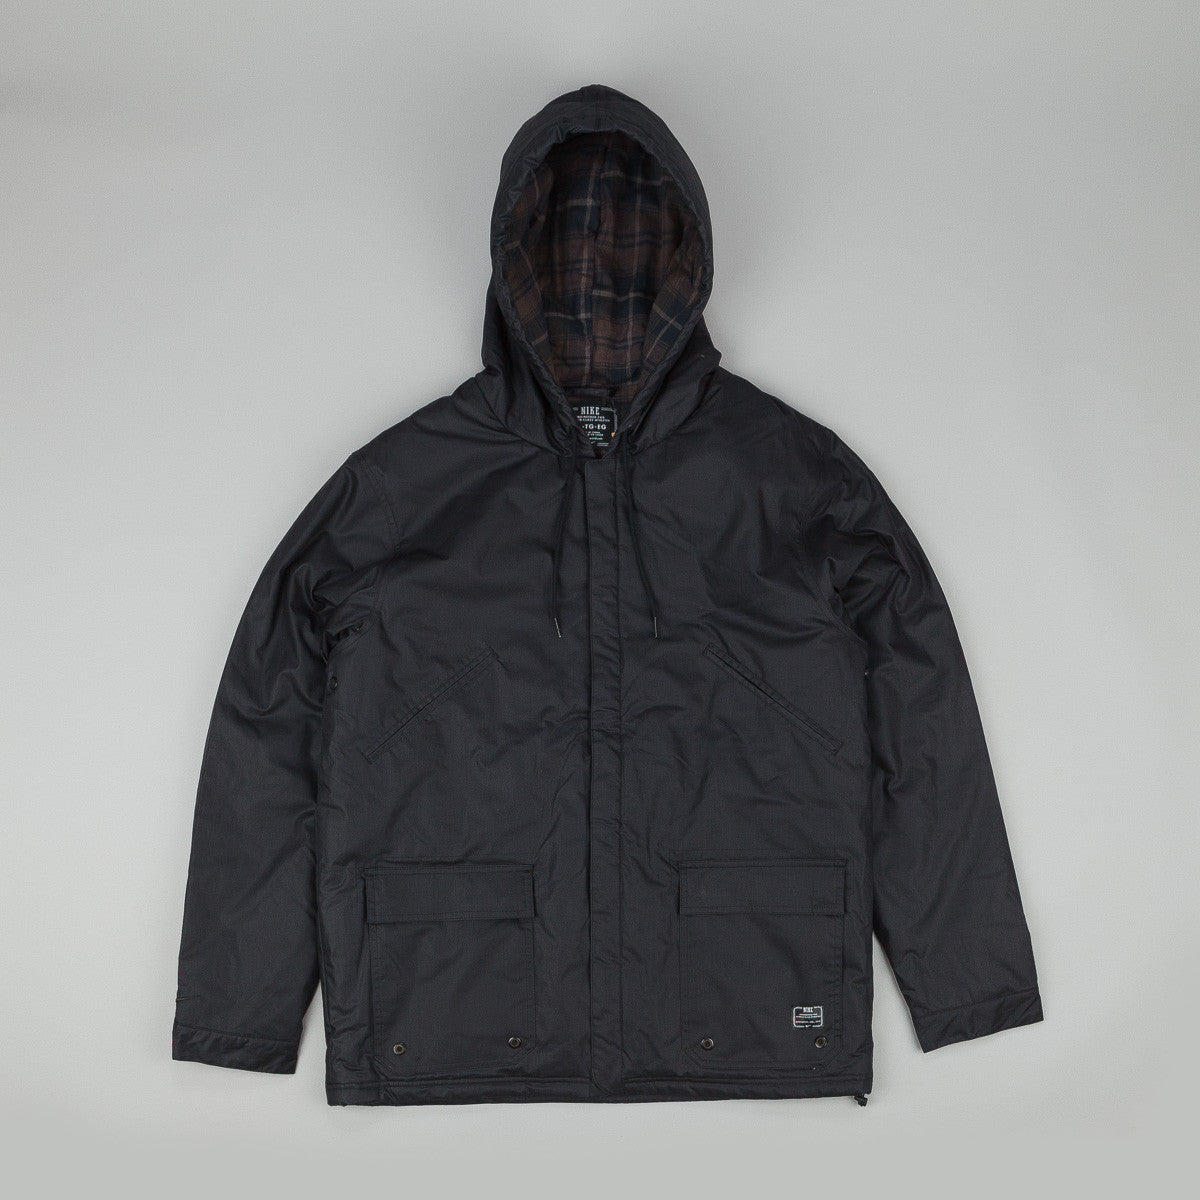 Nike SB Huntsman Jacket